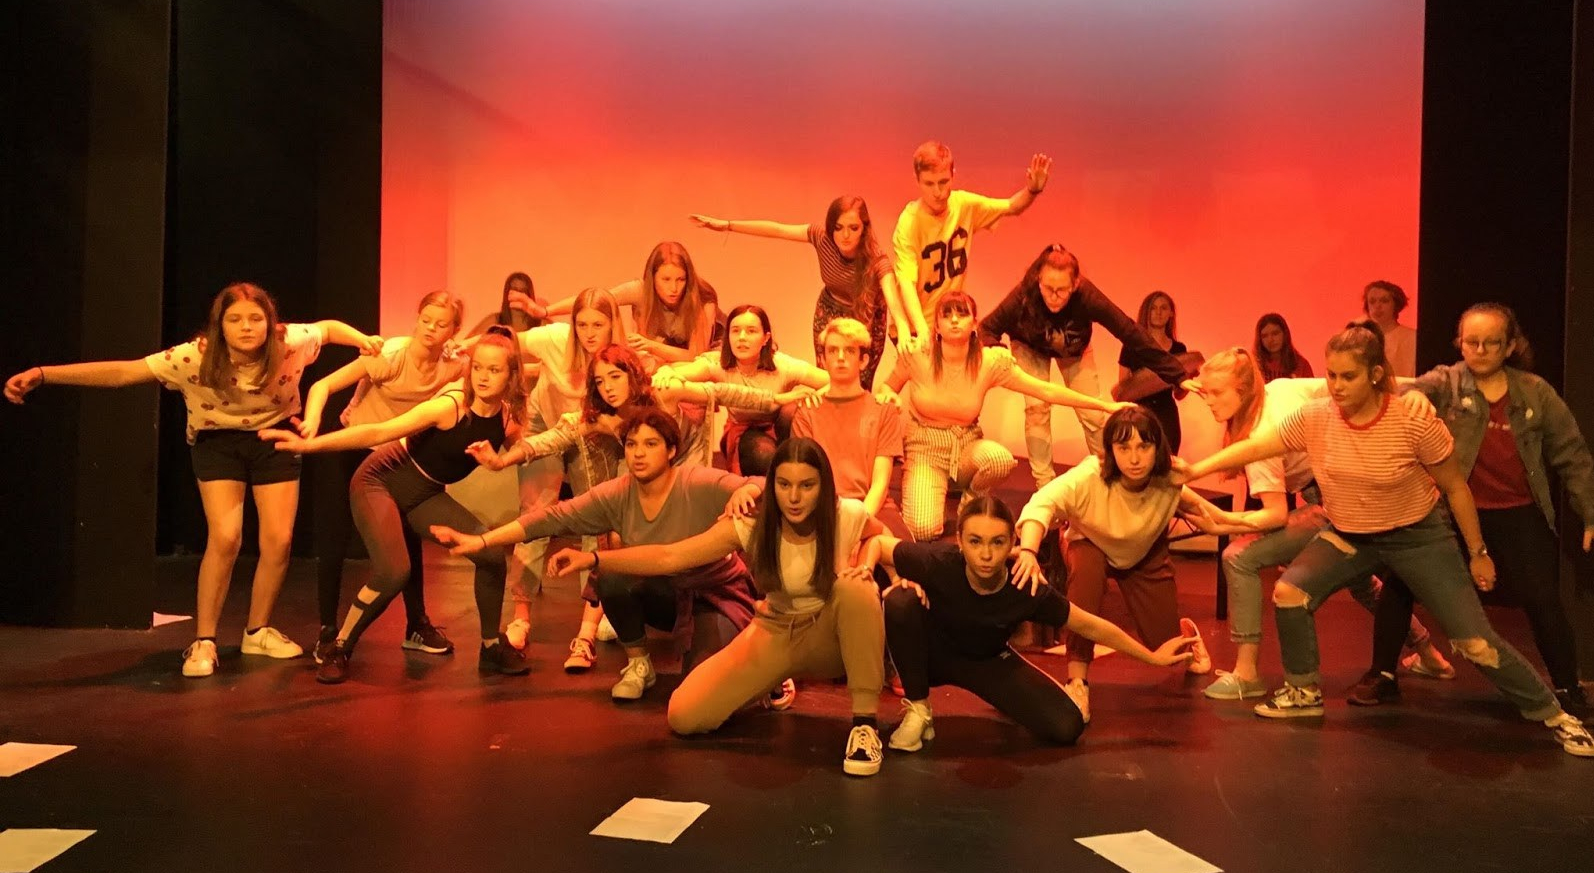 Stables showcases talents of local teenagers